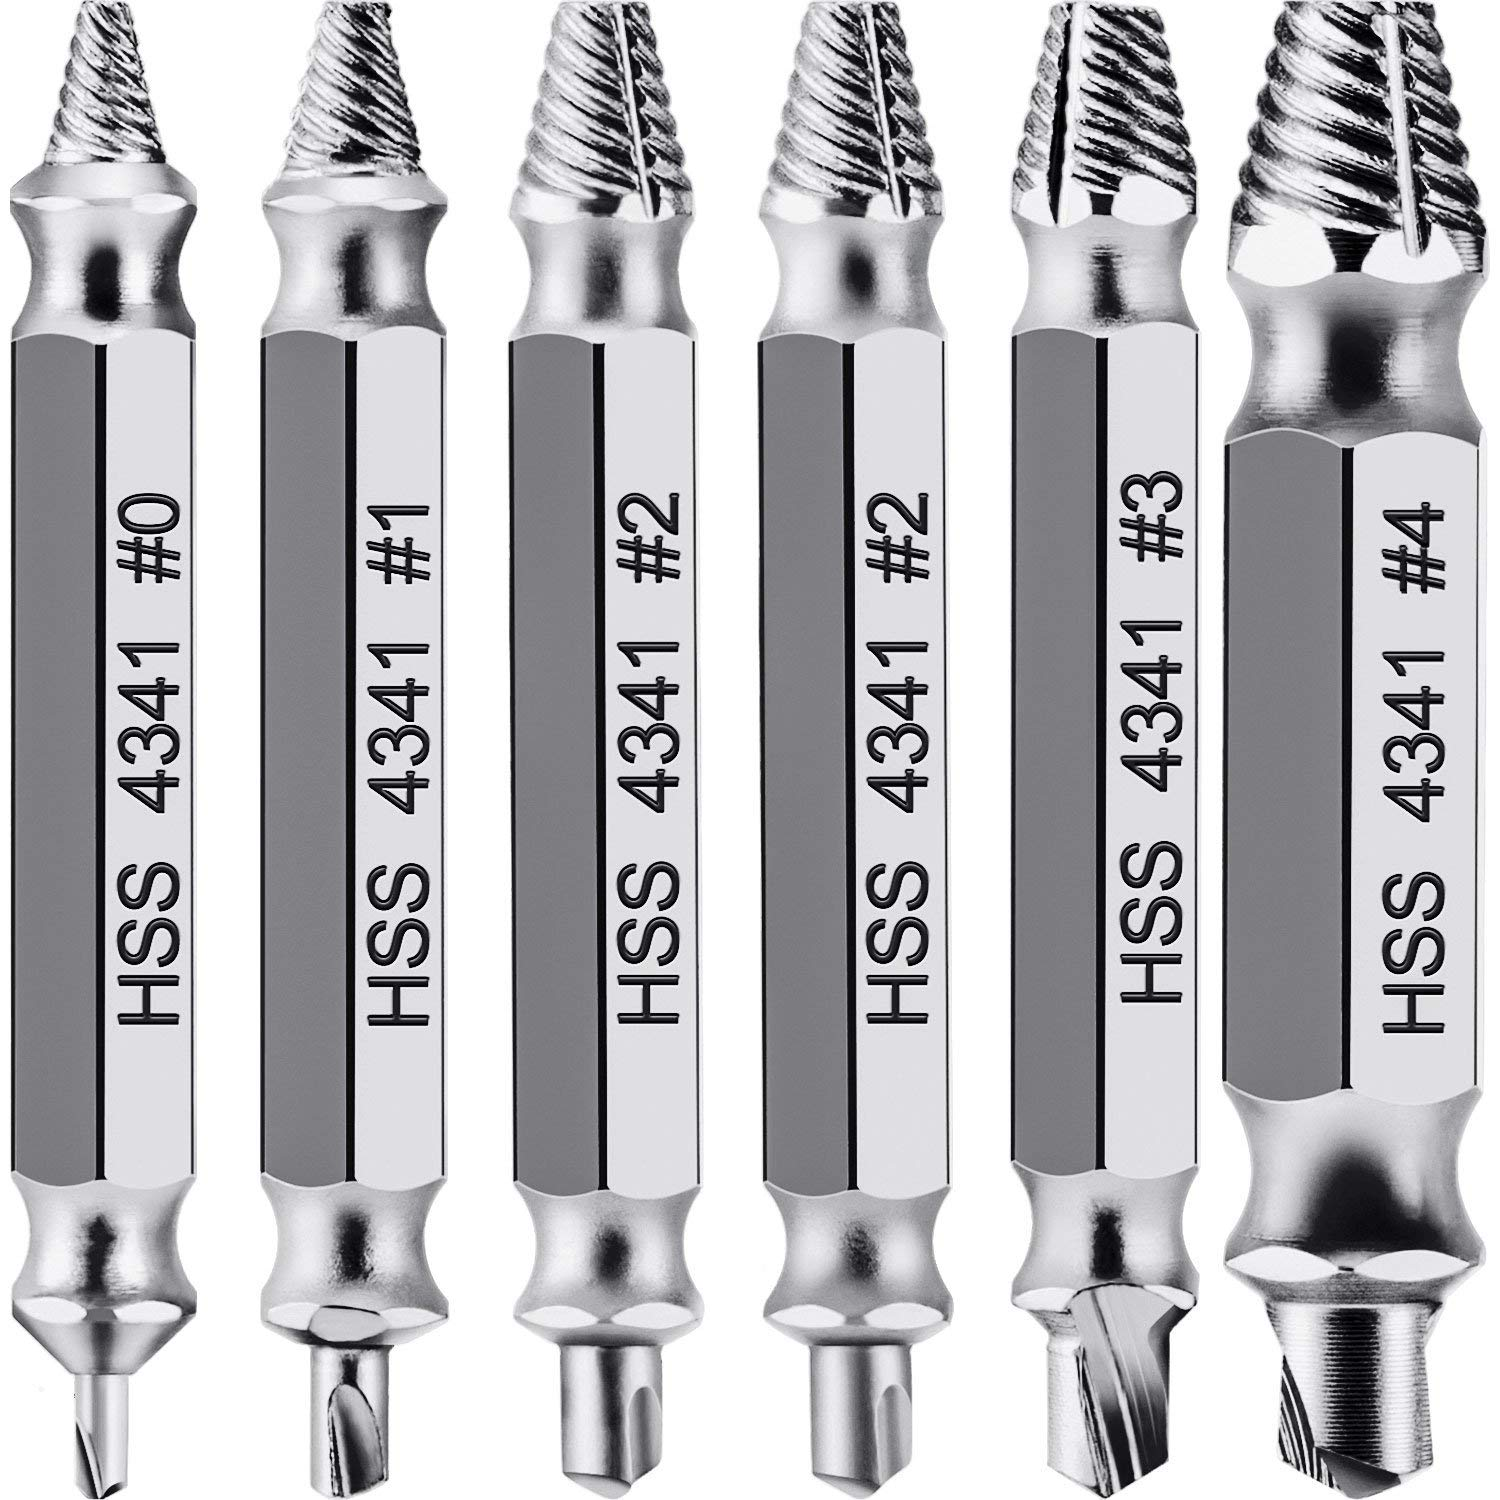 4pcs Screw Extractor Drill Bits Guide Set Broken Damaged Bolt Remover Double Ended Damaged Screw Extractor Remover Tool 5.1cm Drill Bits